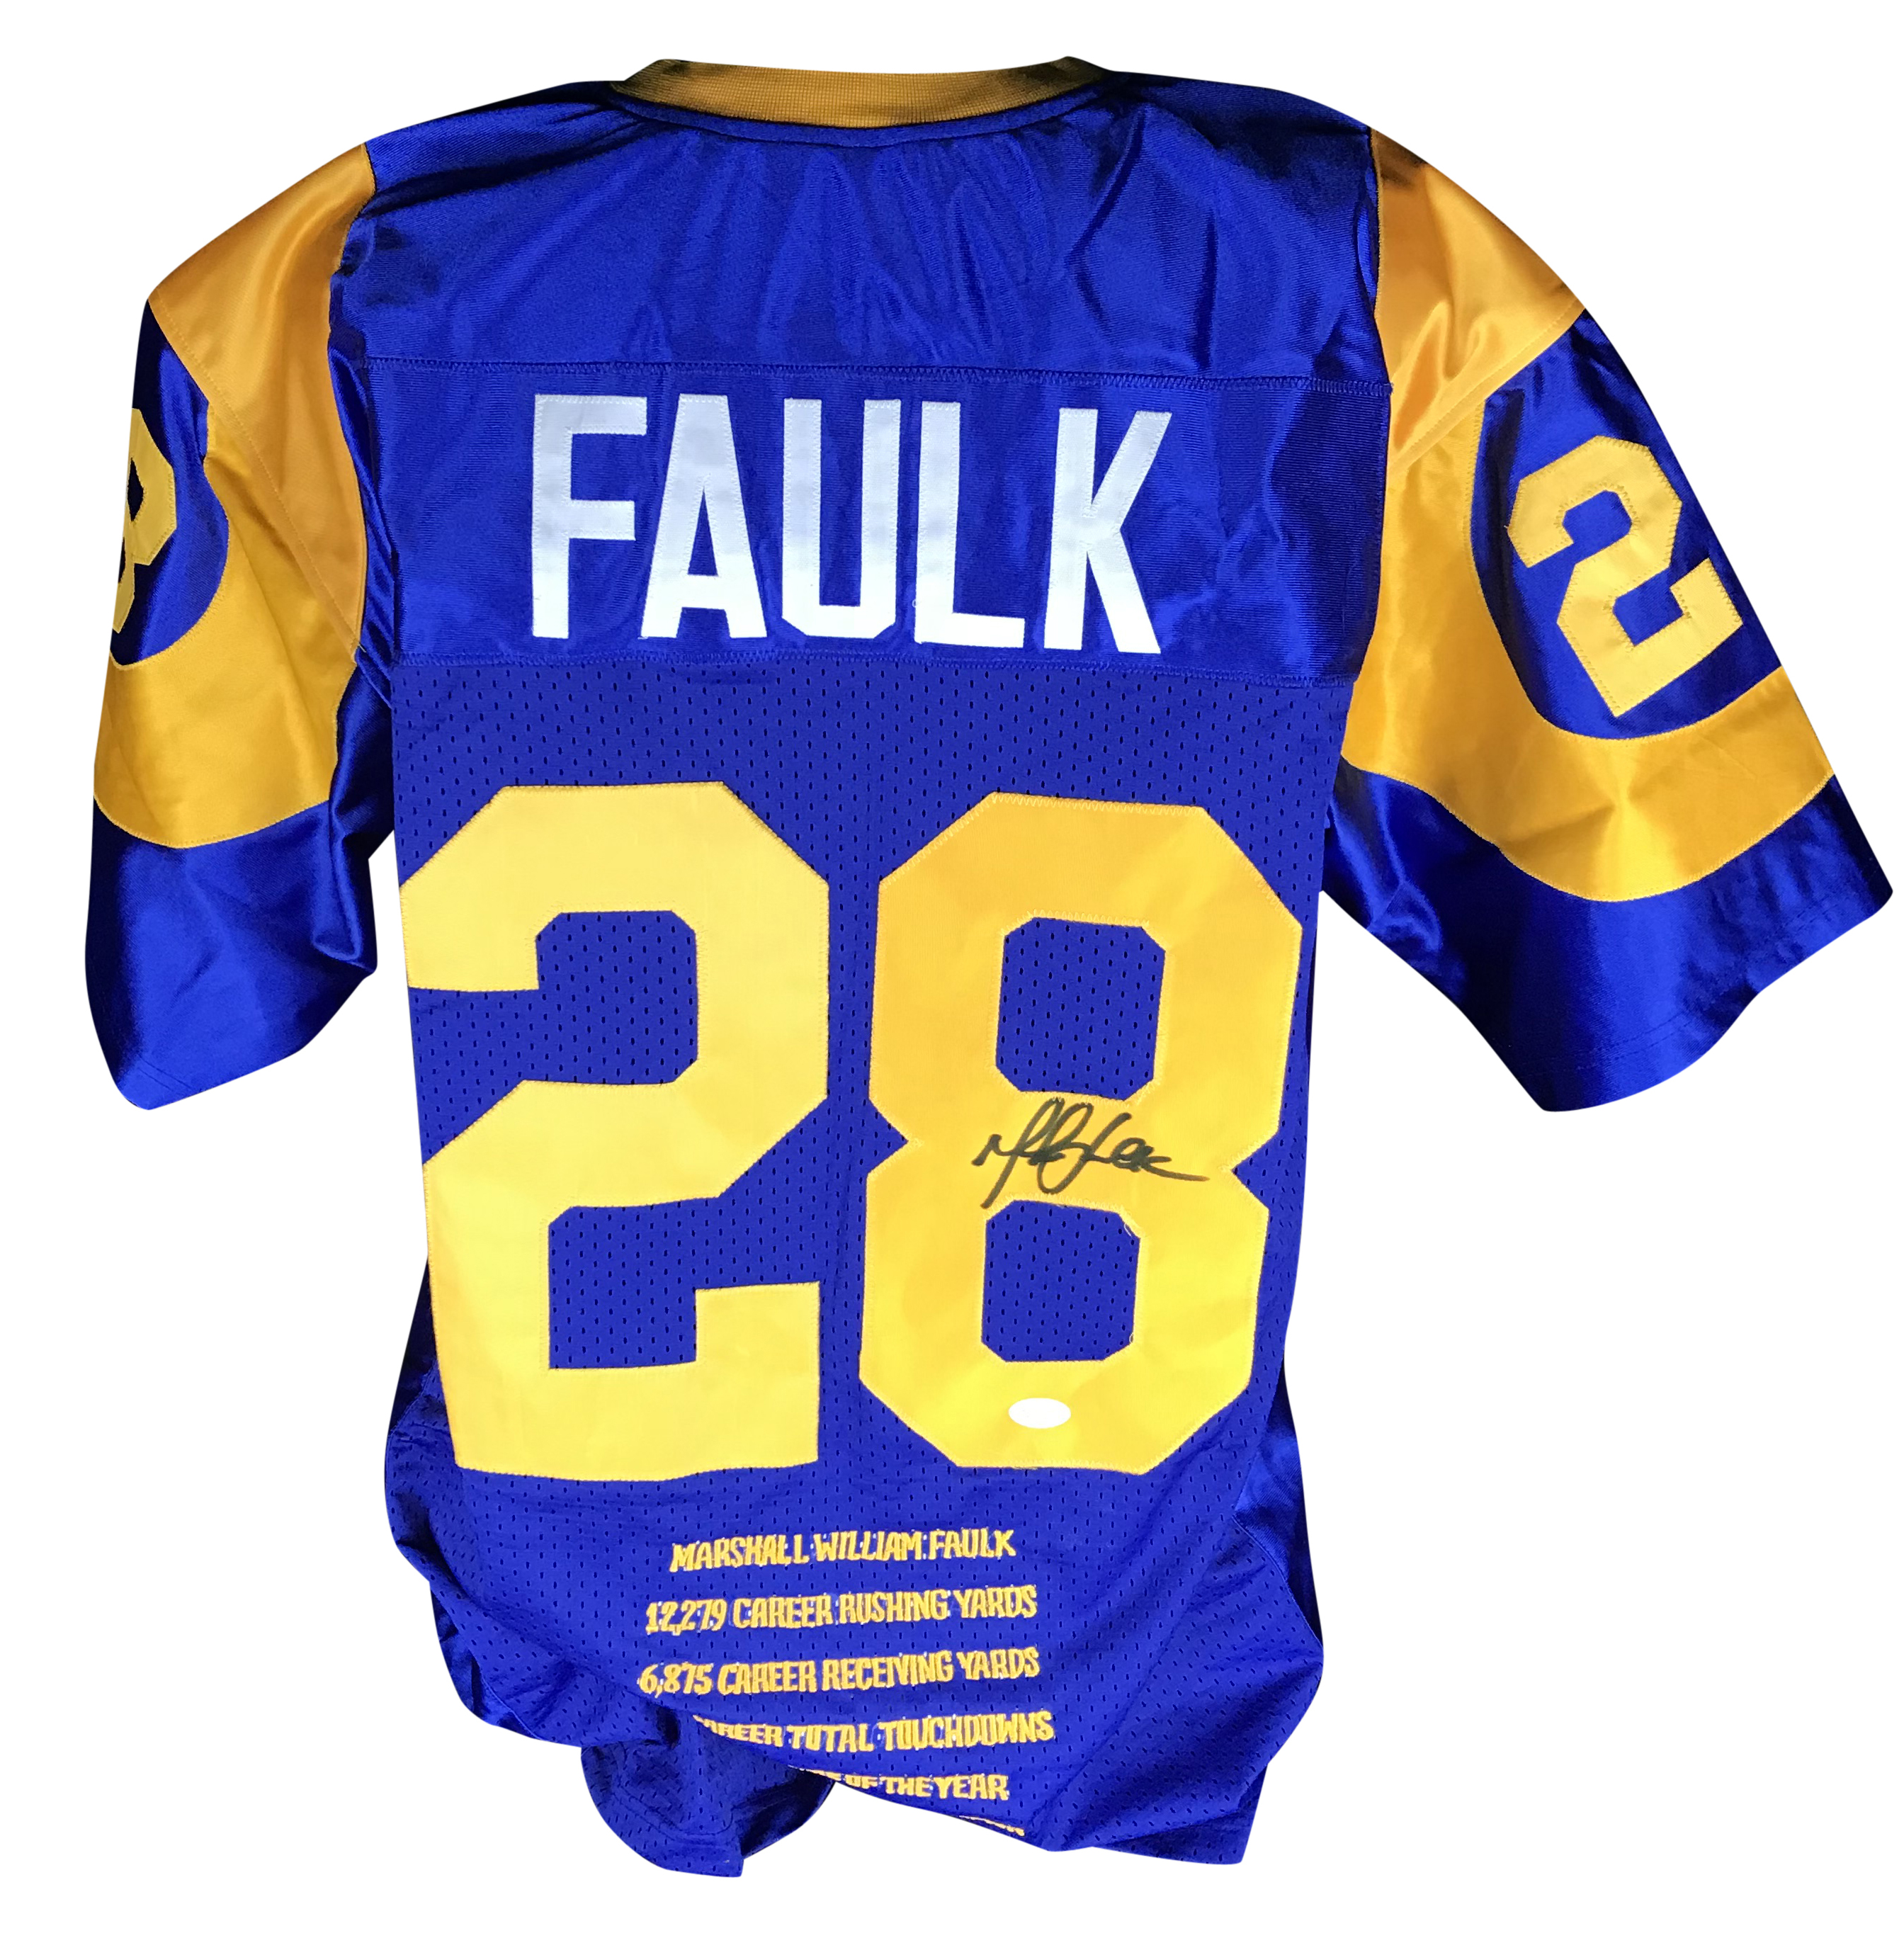 buy online 84d49 1beae Lot Detail - Marshall Faulk Signed St. Louis Rams Jersey (JSA)